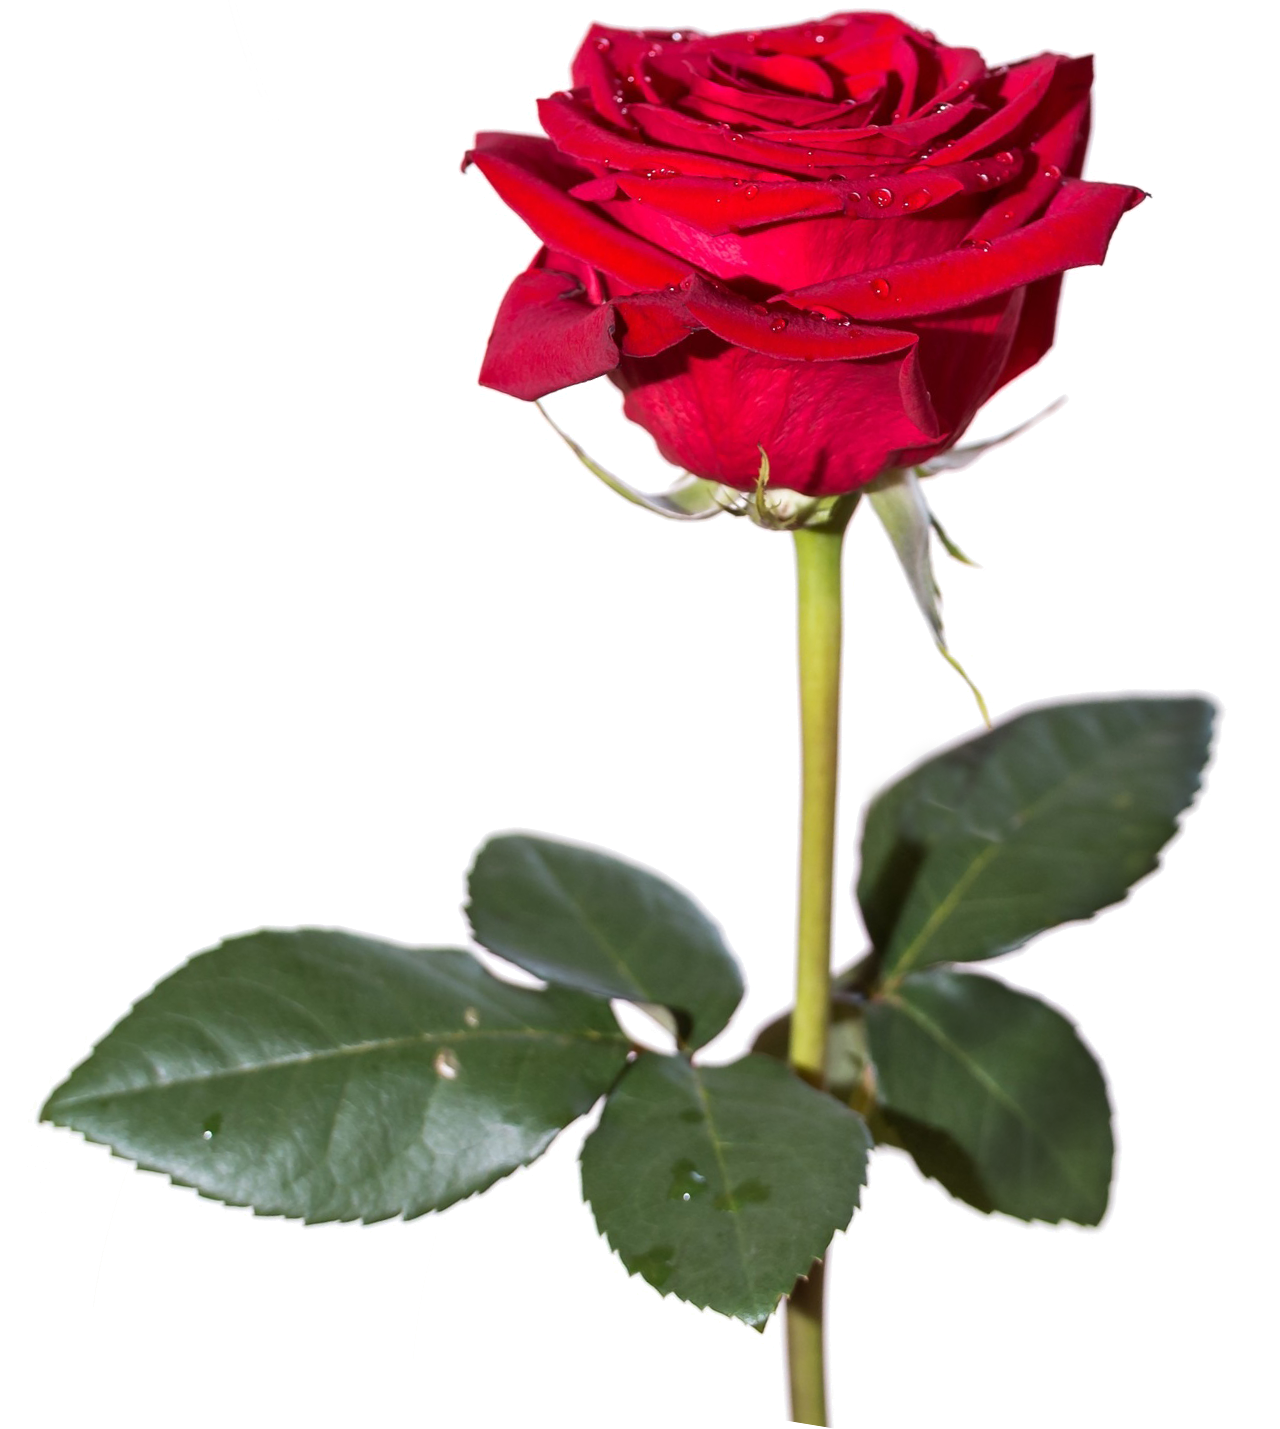 Aesthetic rose png. Hd transparent images pluspng